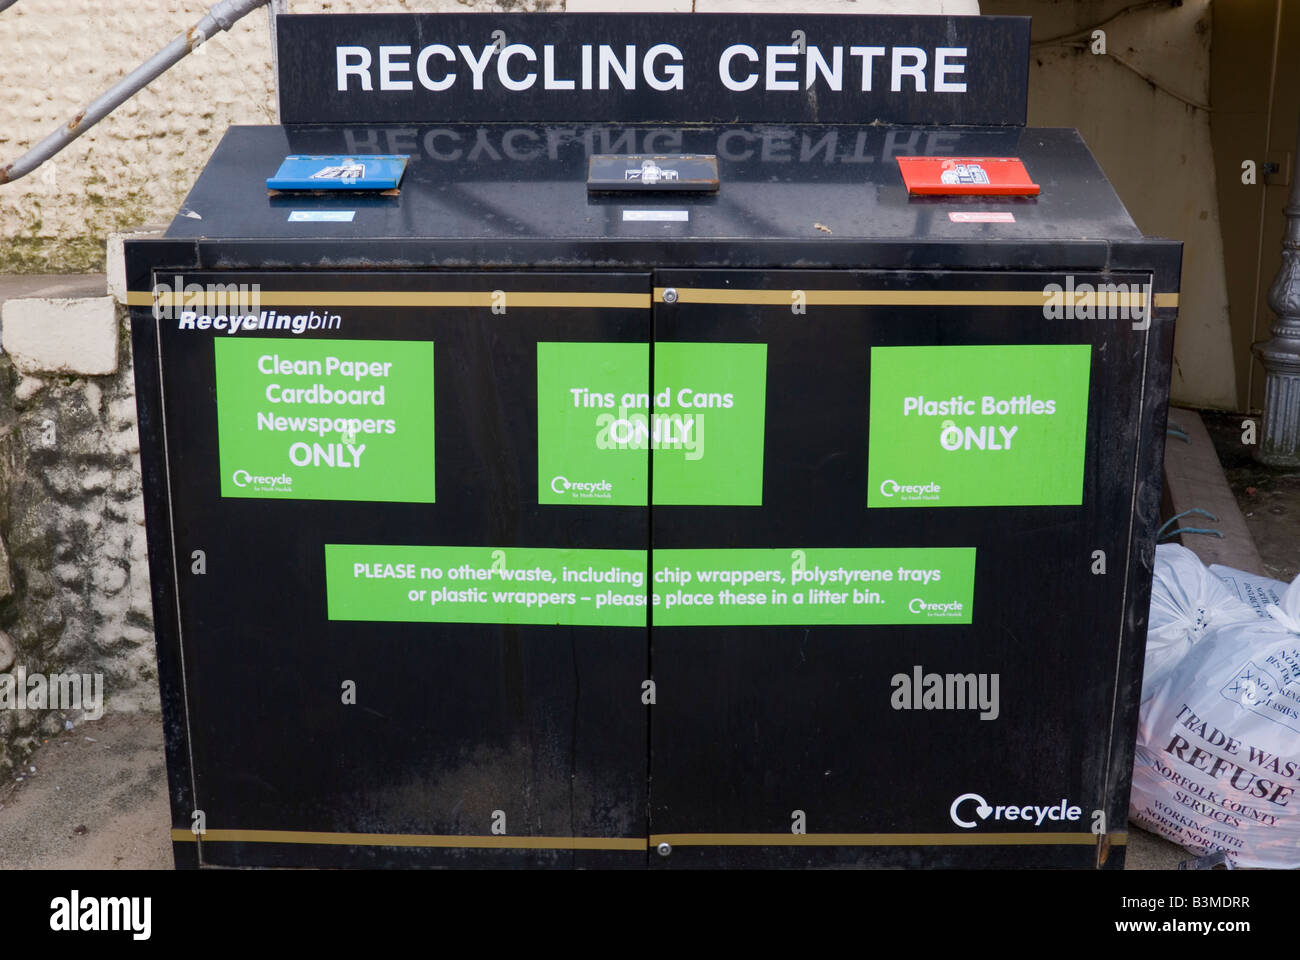 Recycling Centre With different openings for different waste items - Stock Image